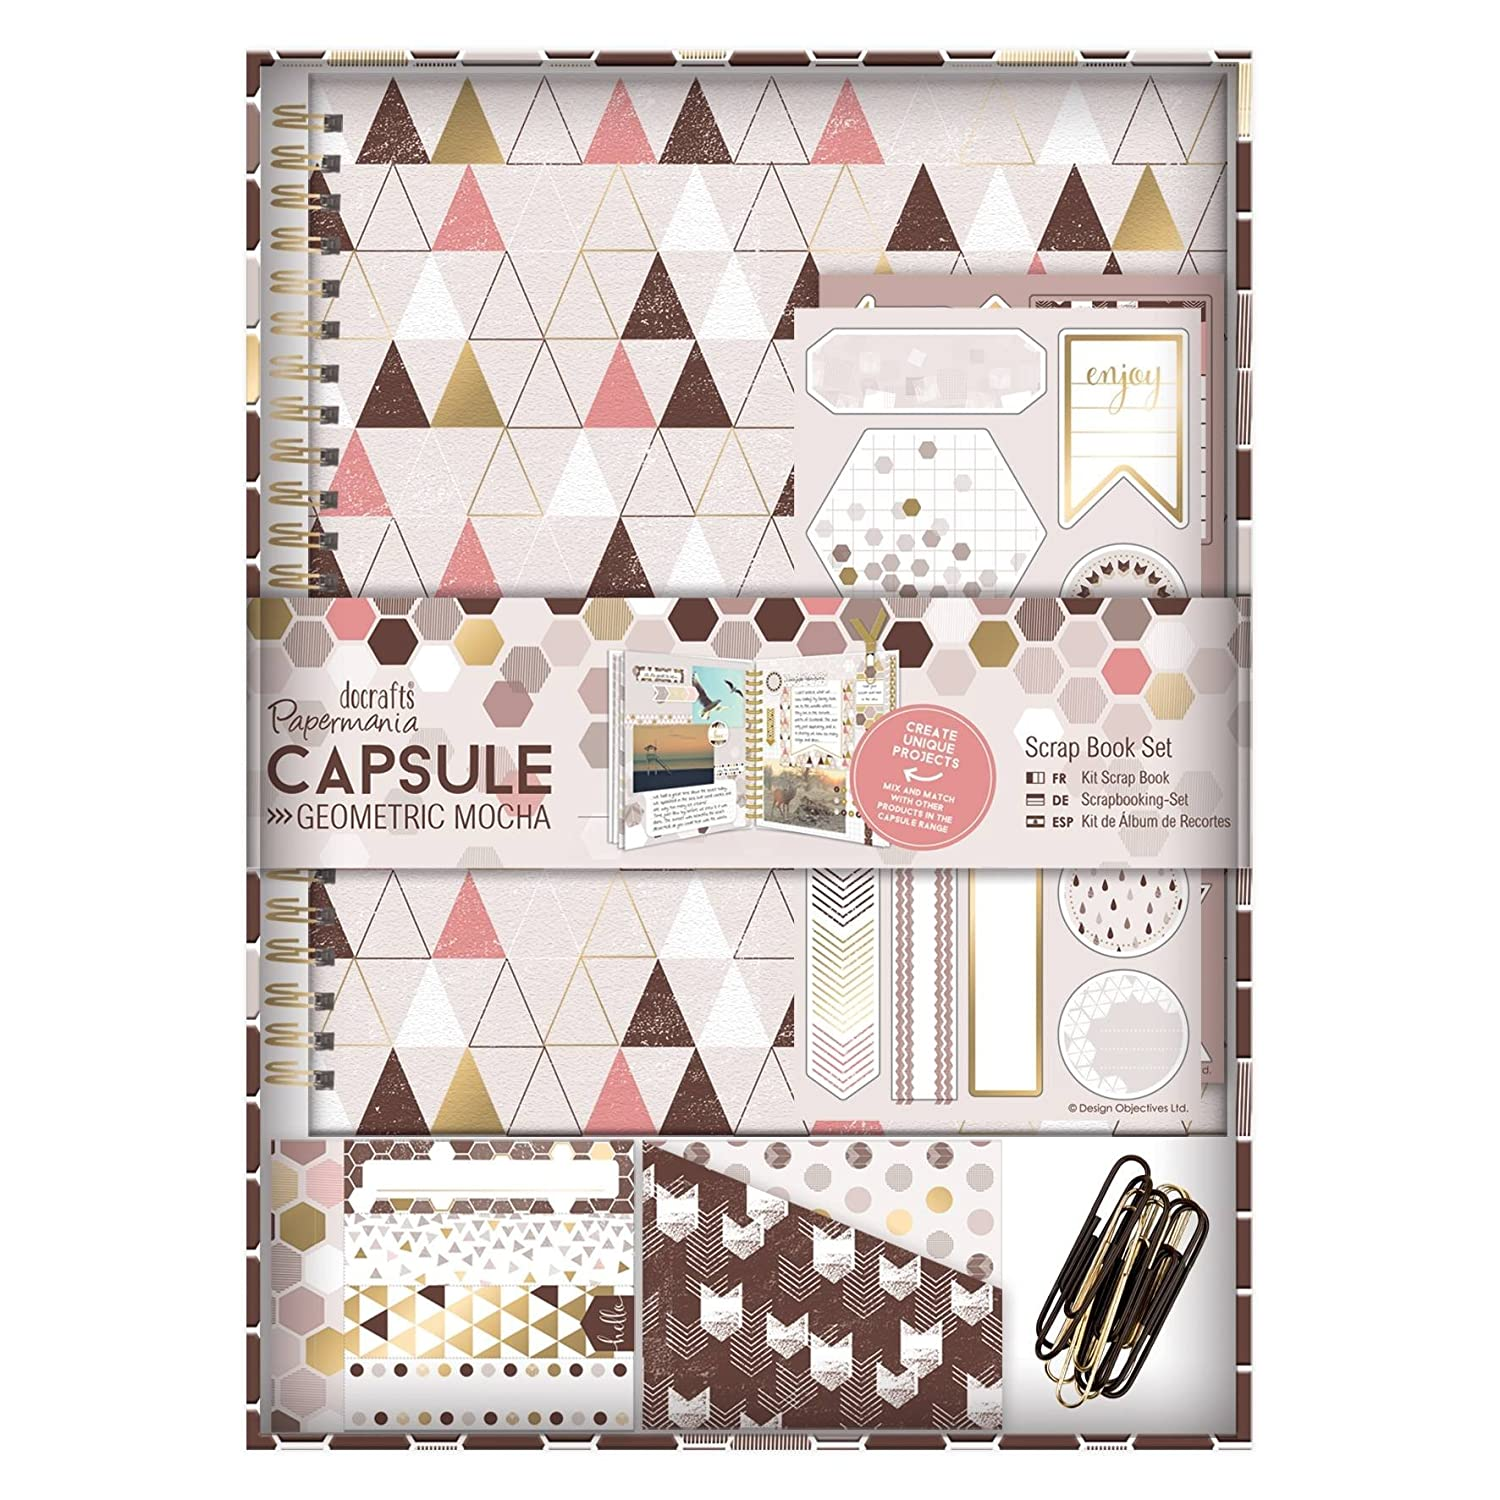 docrafts Papermania Capsule Geometric Scrap Book Set, Neon PMA105351